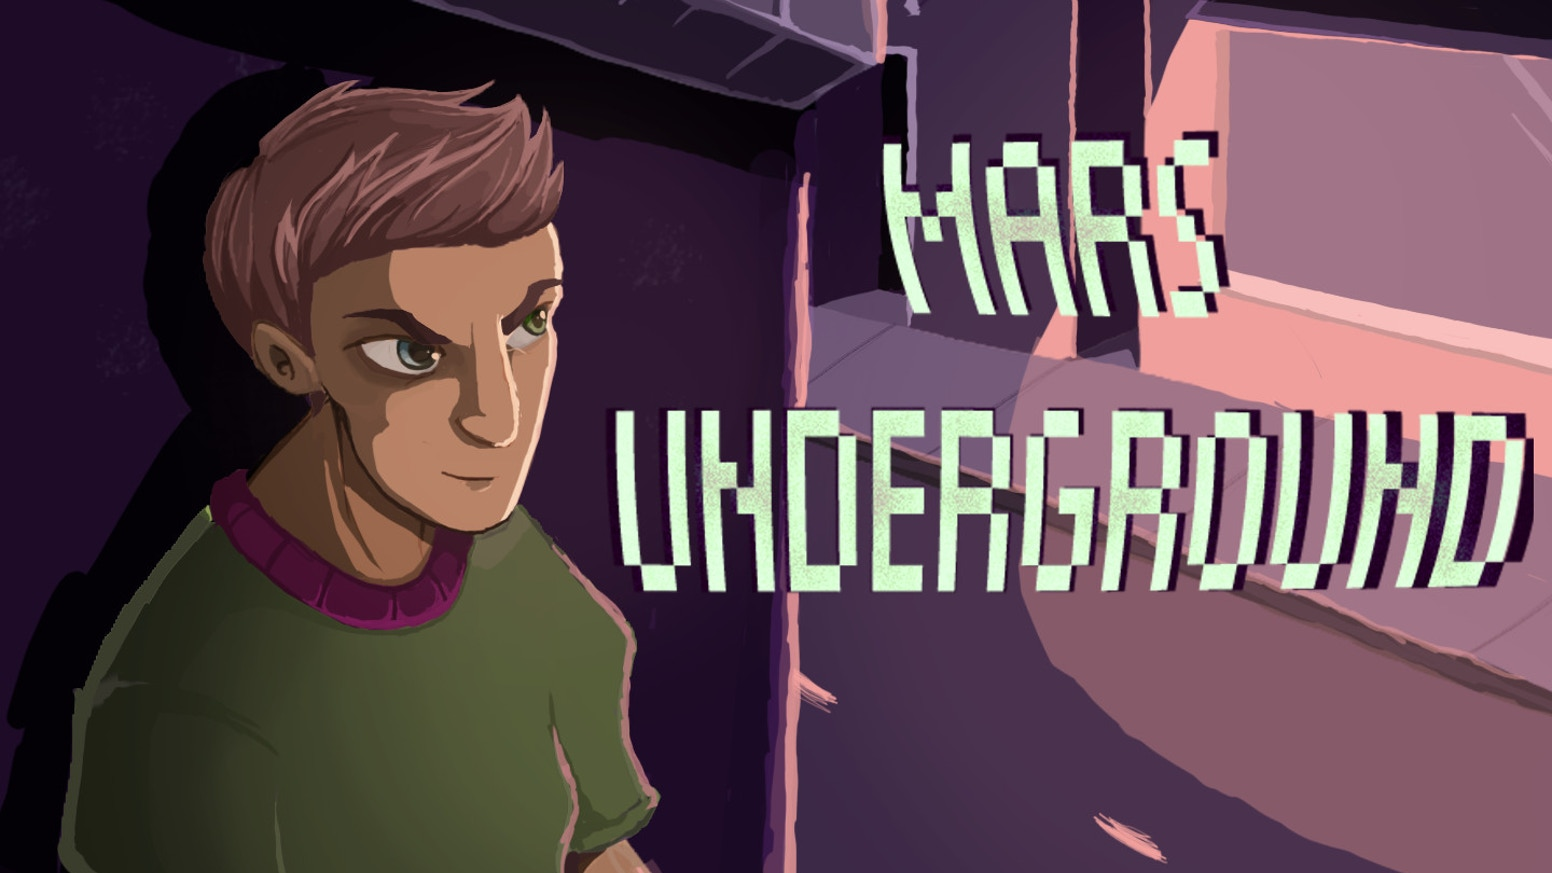 Time loop mystery adventure game. It's Mars' first day at a new school. Except every day is his first day. Every night the world ends.